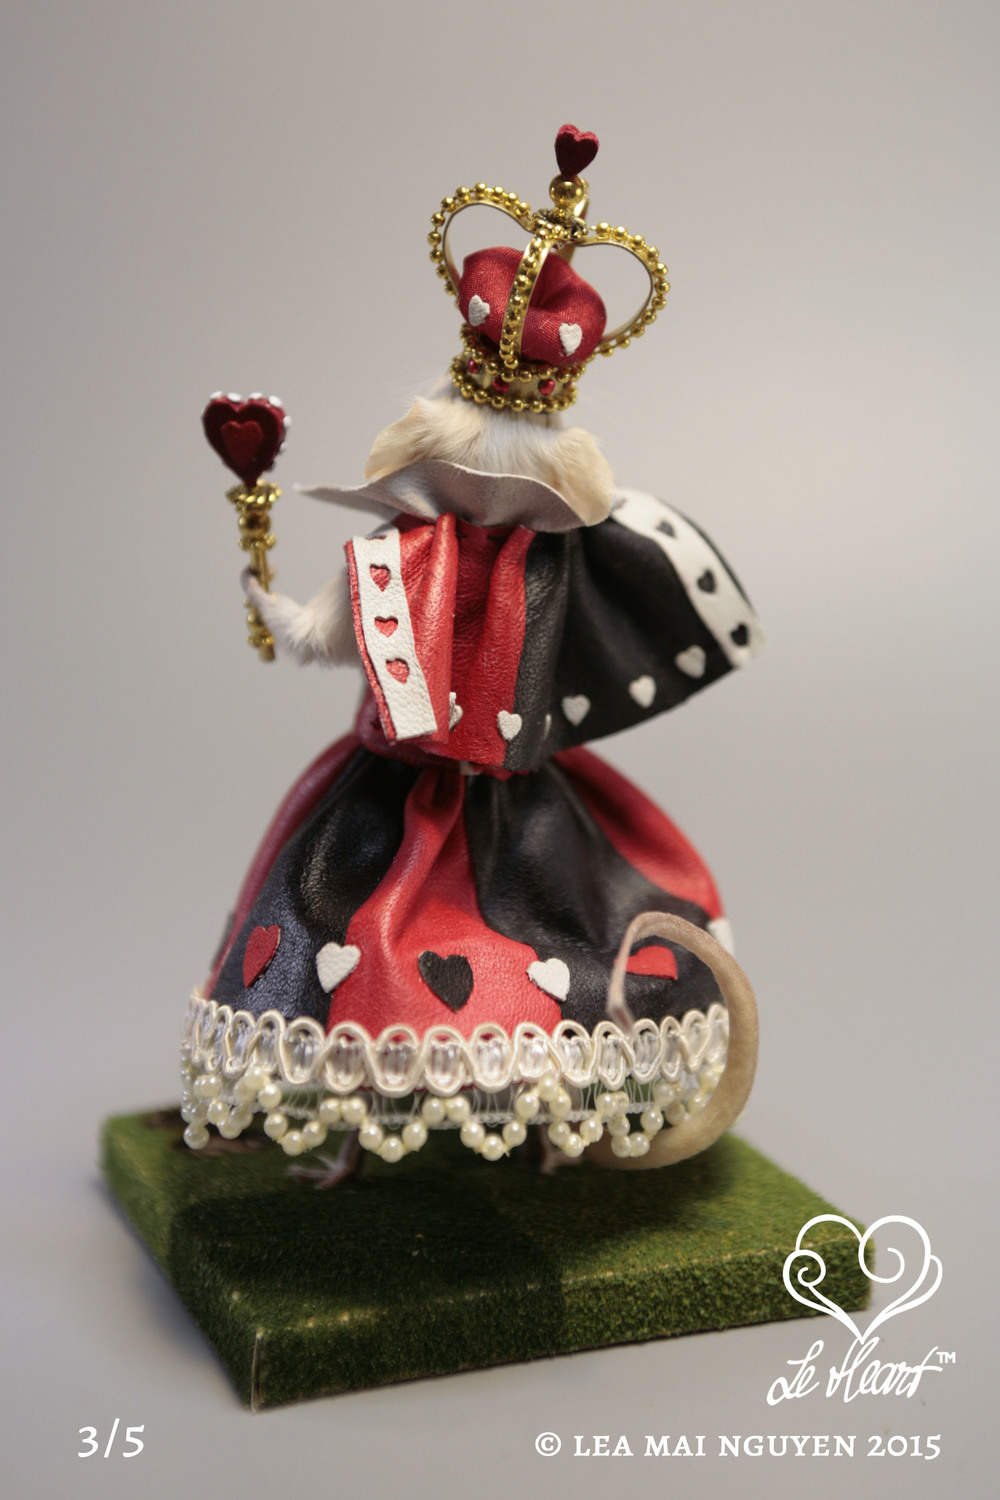 Queen of Hearts 3/5